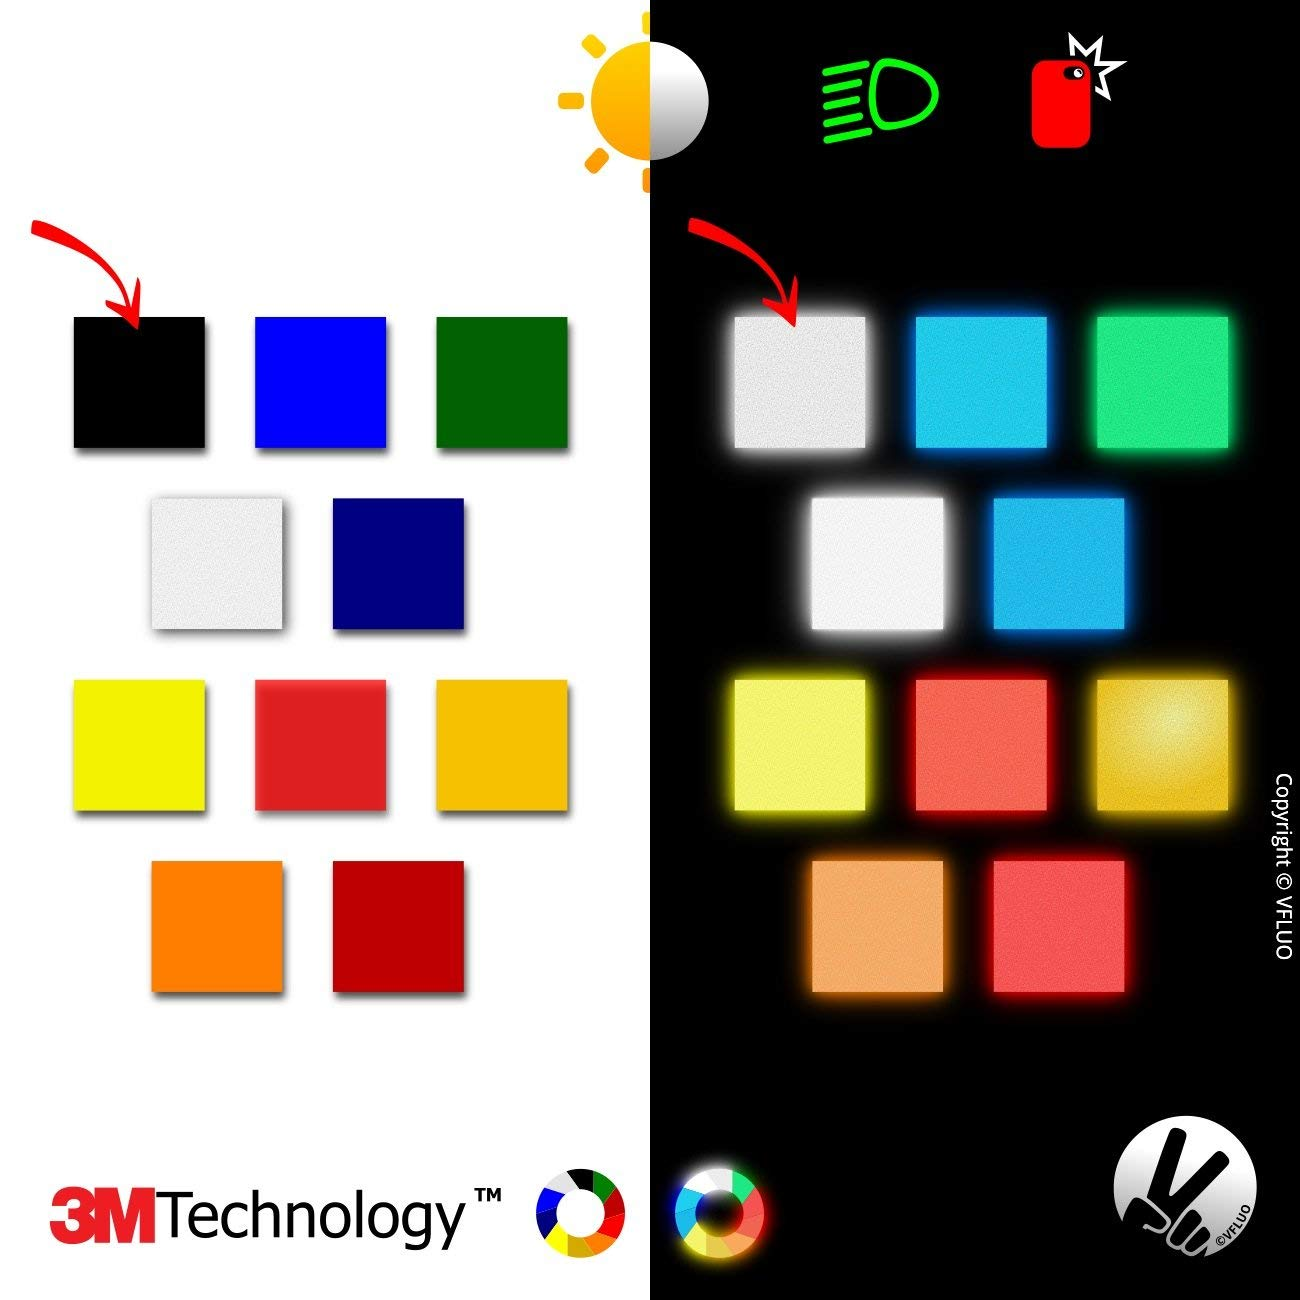 VFLUO 3M REFLECTIVE COLORS Red Universal adhesive DIY kit for Helmet//motorbike//Scooter//Bike 3M Technology 10 x 15 cm sheet